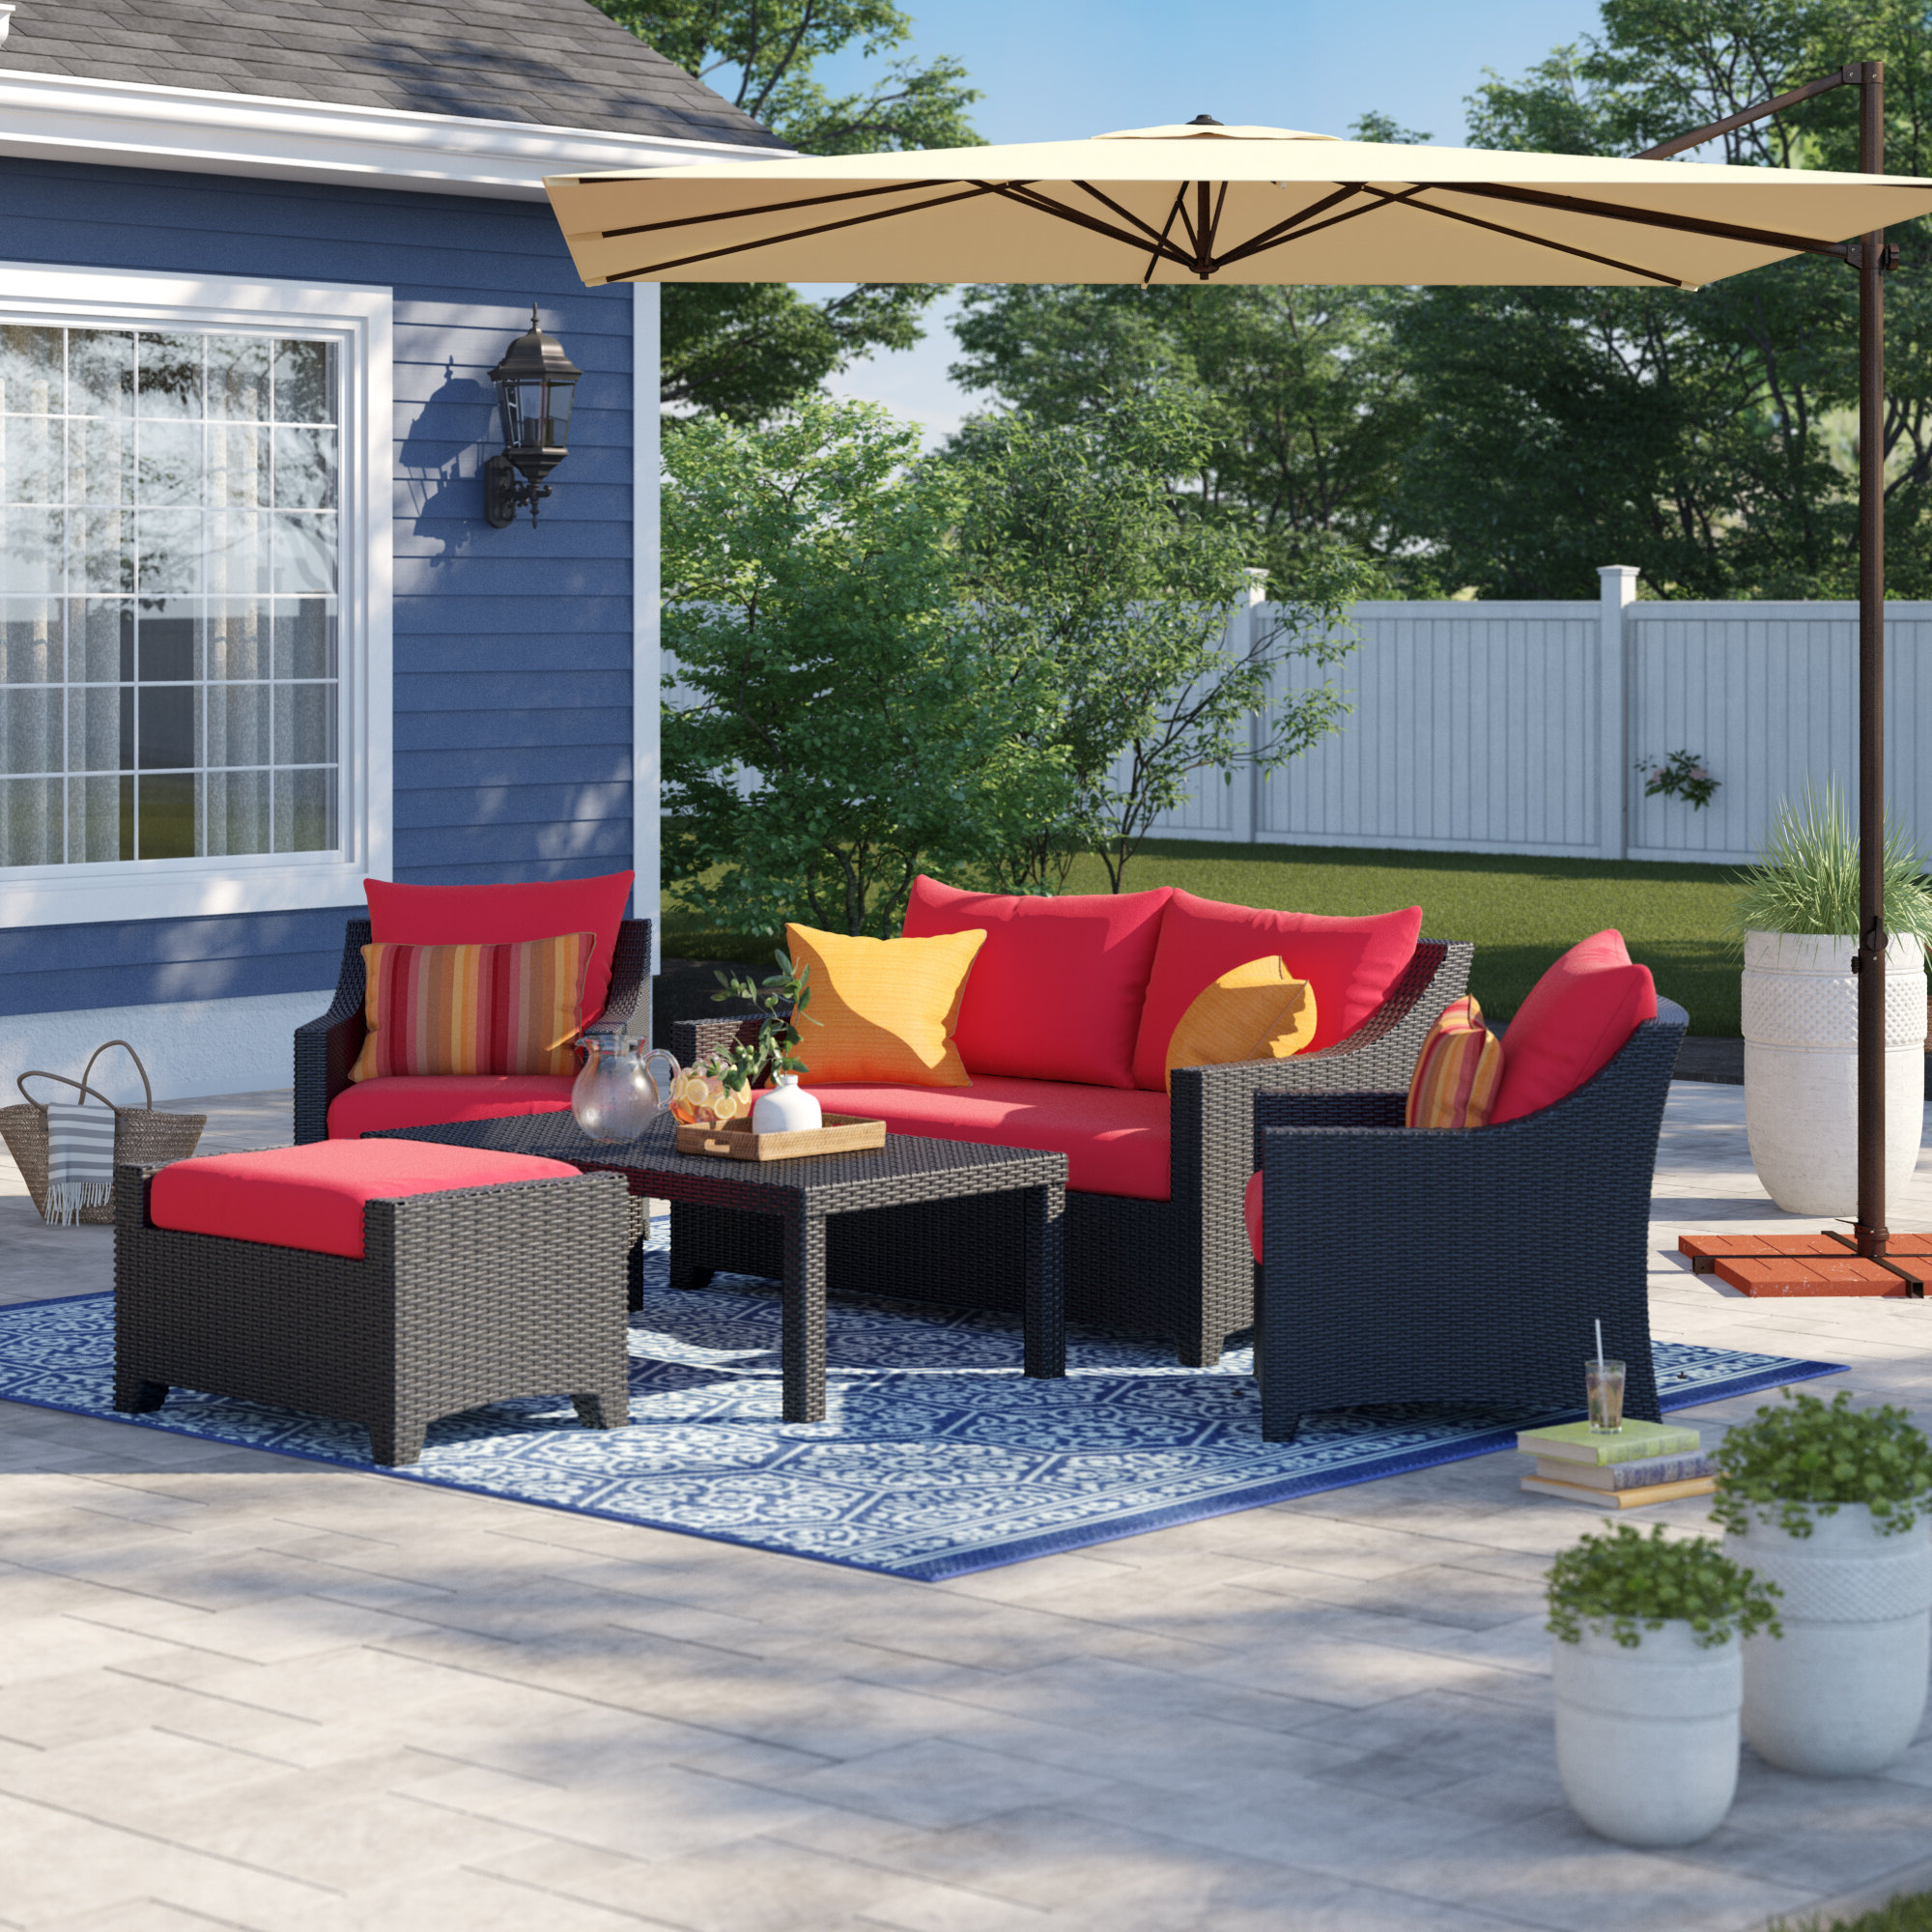 Northridge Patio Sofas With Sunbrella Cushions Within 2019 Northridge 5 Piece Sunbrella Sofa Set With Cushions (View 17 of 20)